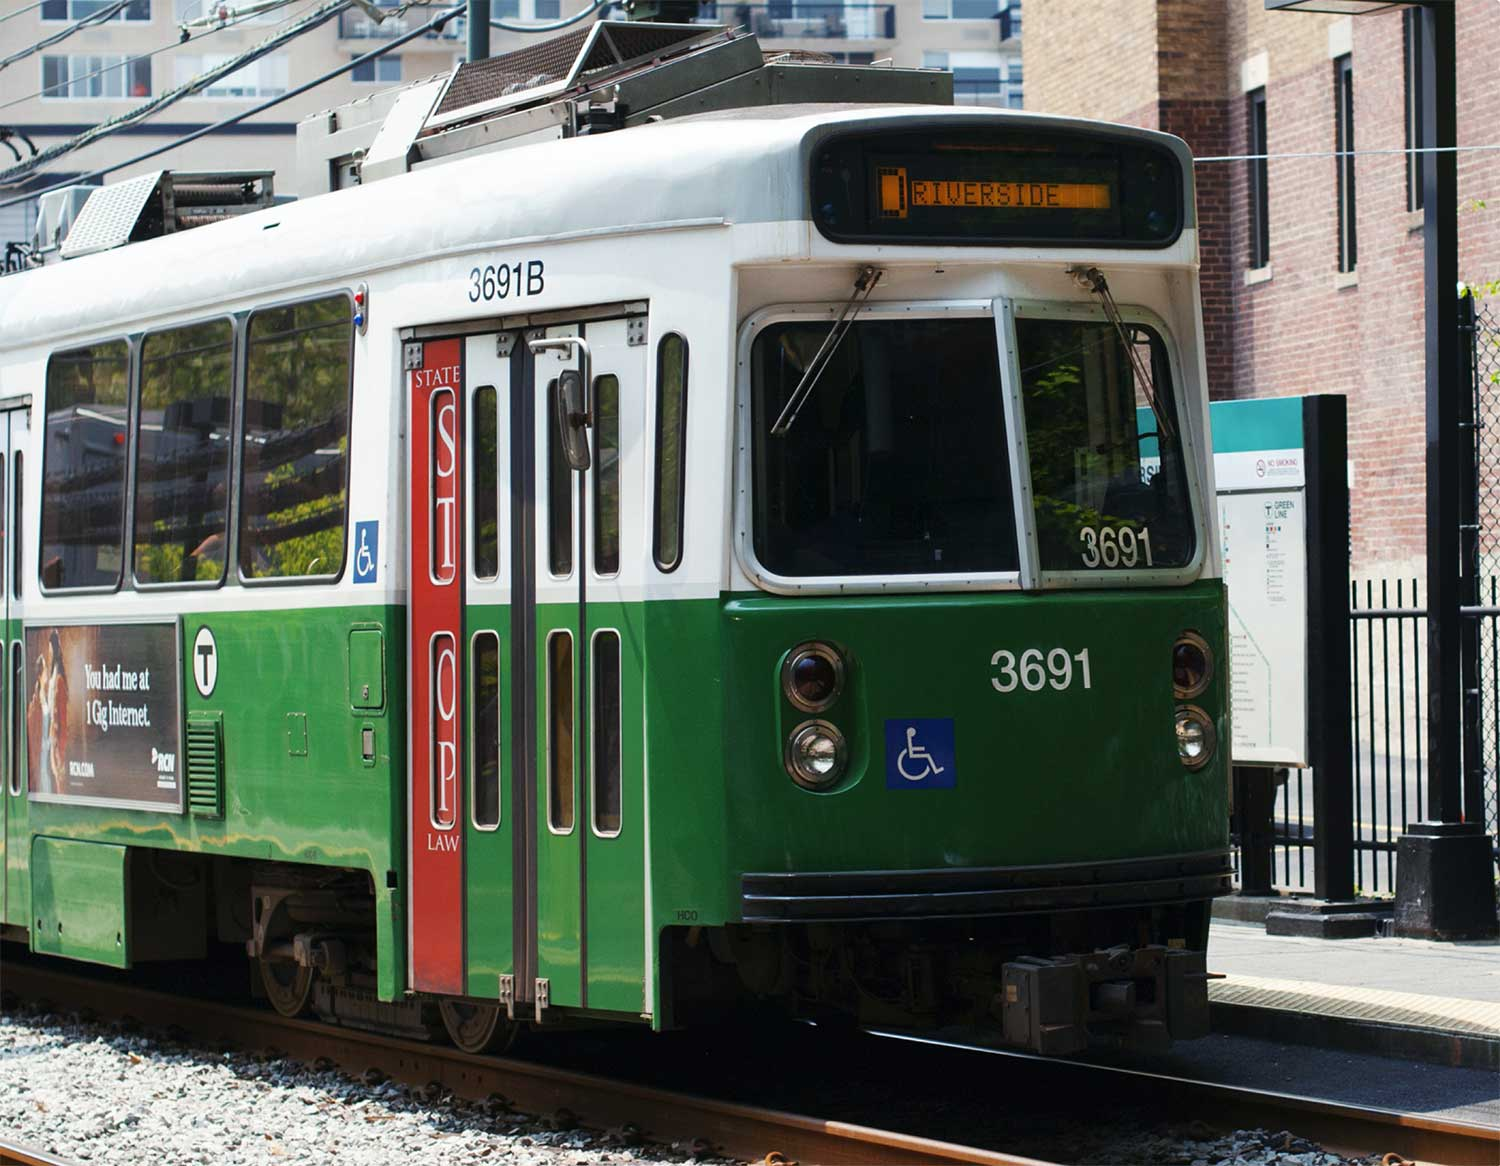 Image of one of the Boston trolleys